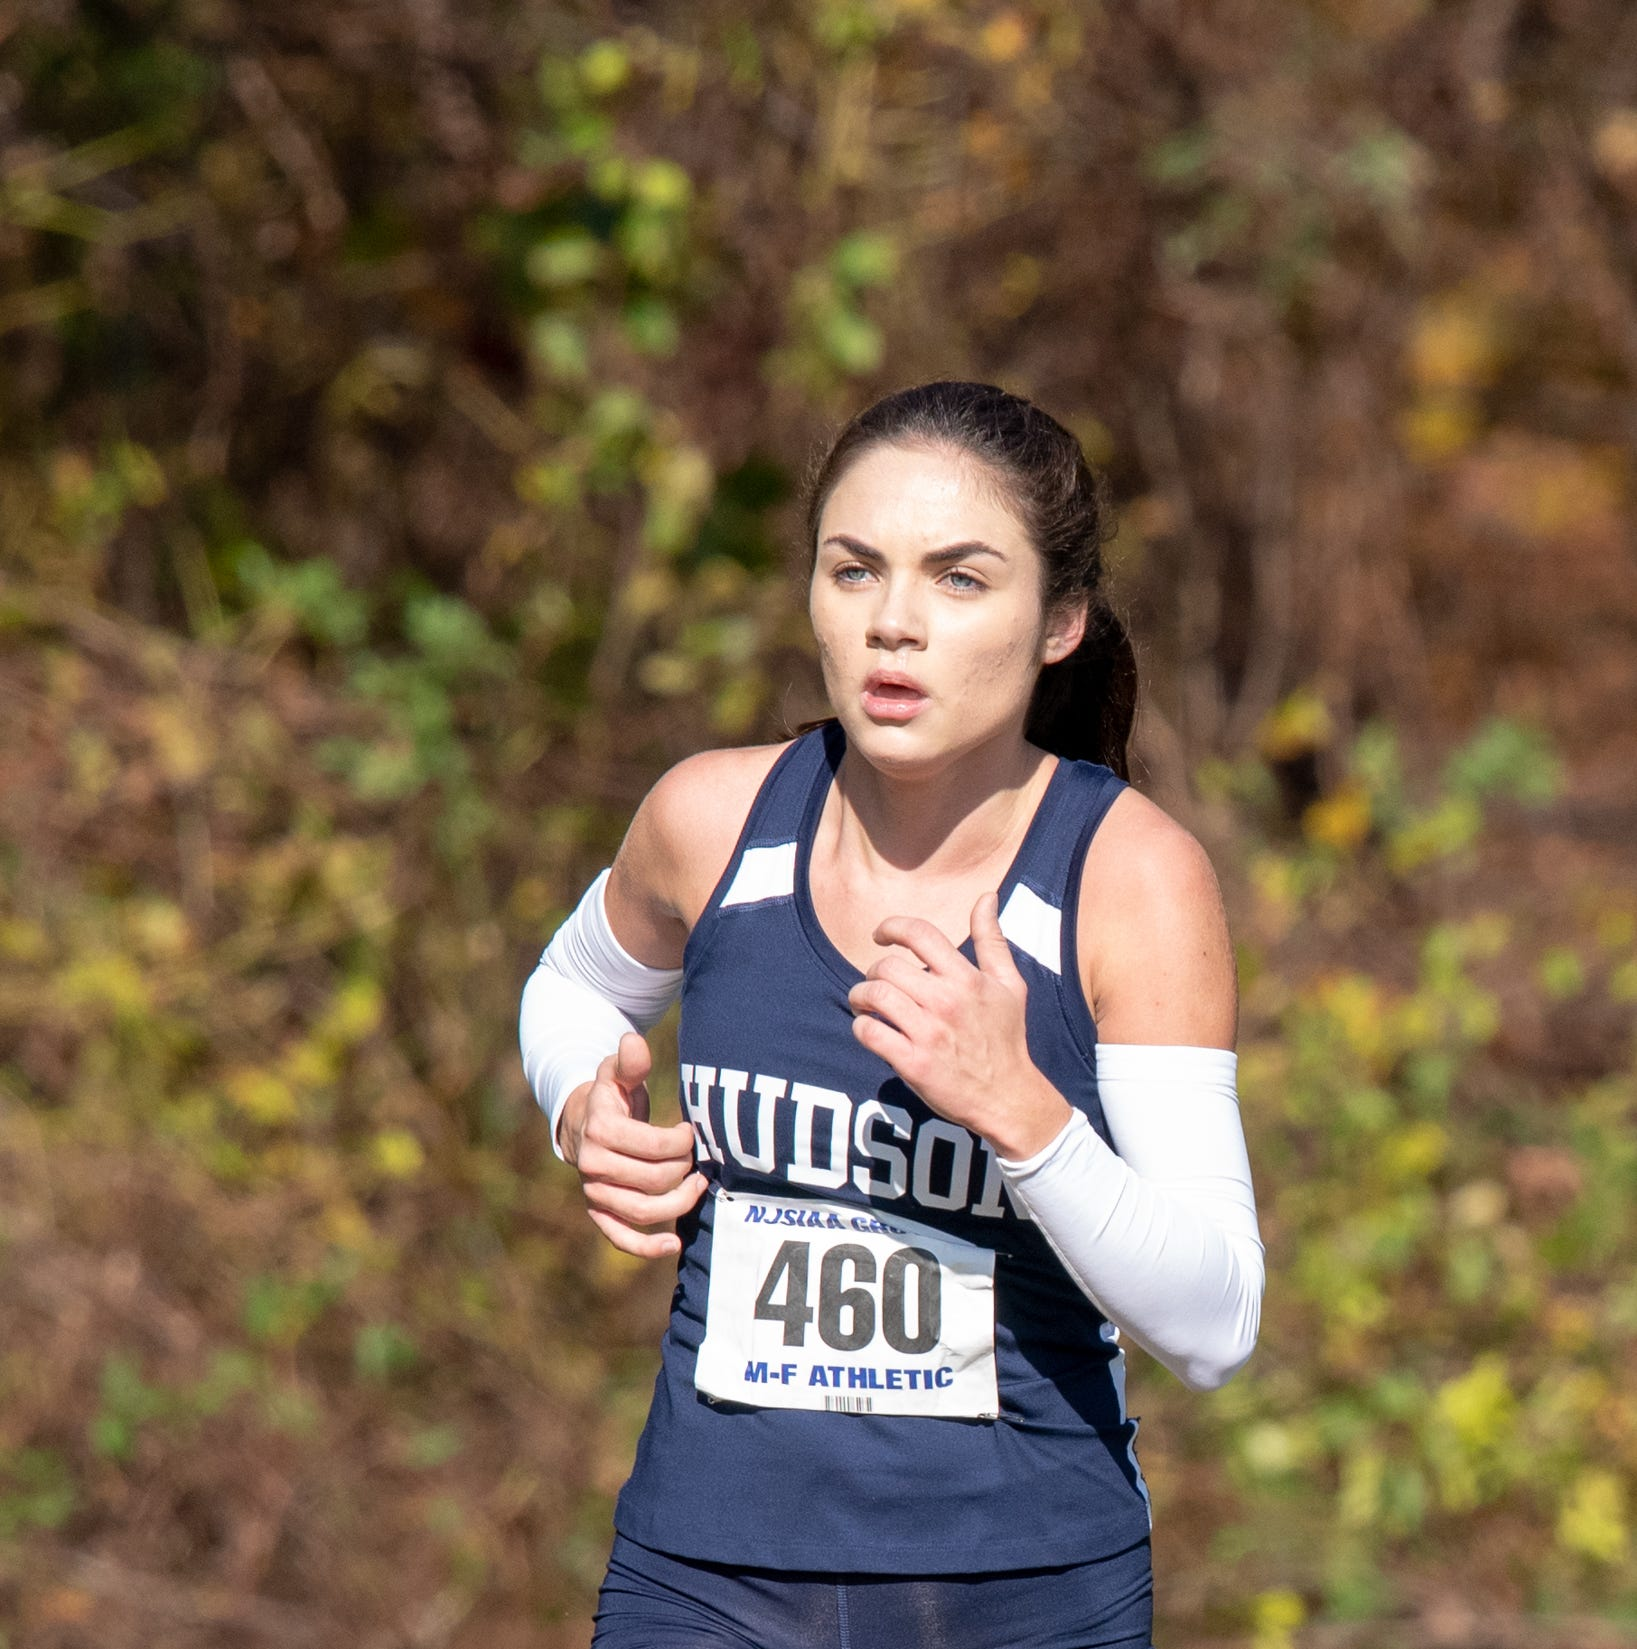 Corina Vidal of Henry Hudson won the Group 1 Grils race with a time of 19:27. The NJSIAA Cross Country Group Championships were held at Holmdel Park, Holmdel on Saturday, November 10, 2018./Russ DeSantis for the Asbury Park Press